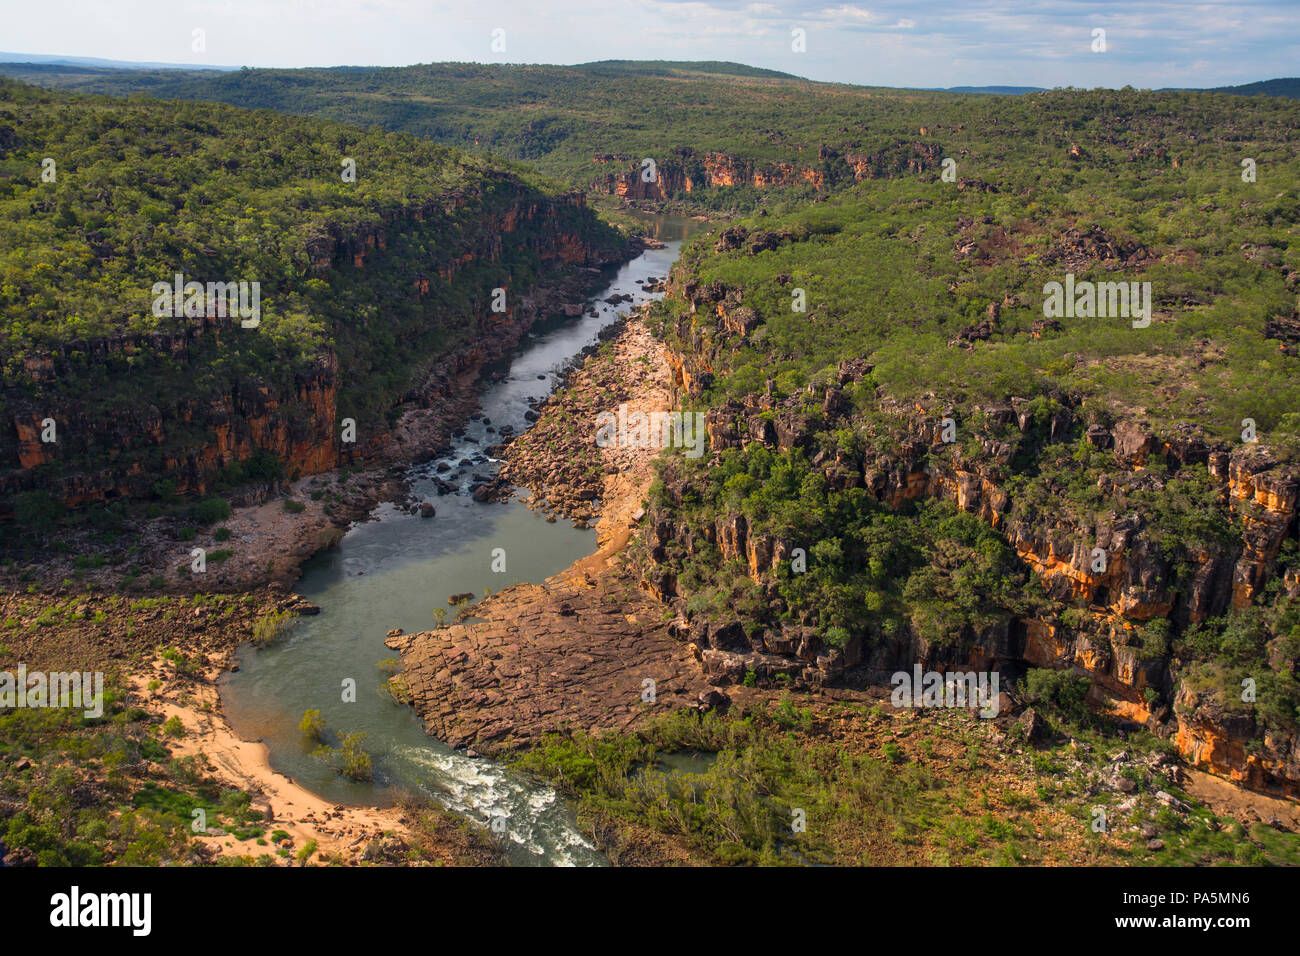 Australian Outback landscape - The Kimberley - Stock Image